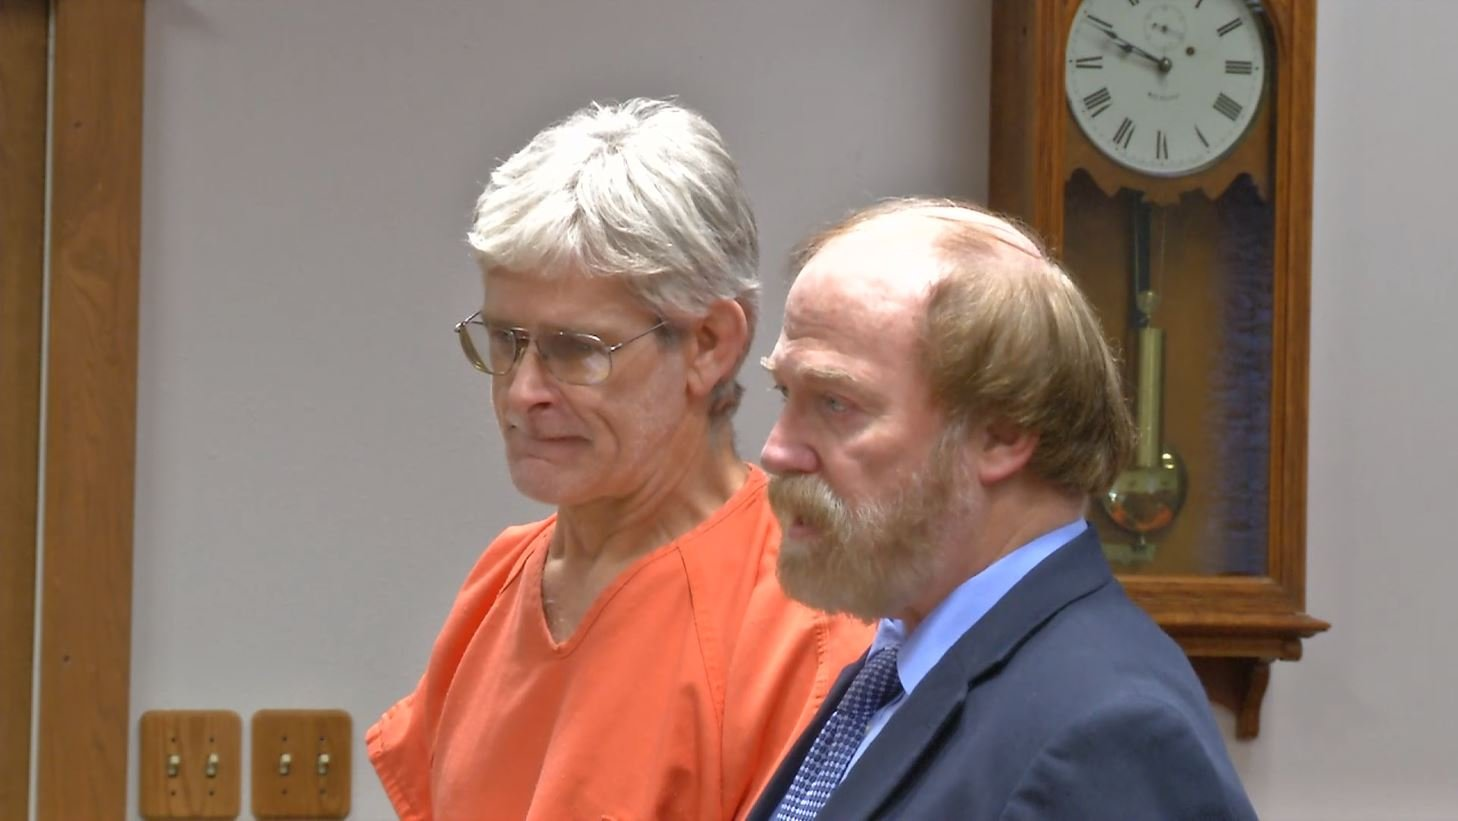 David Wayne Nelson, left, appearing in Ravalli County District Court (MTN News photo)